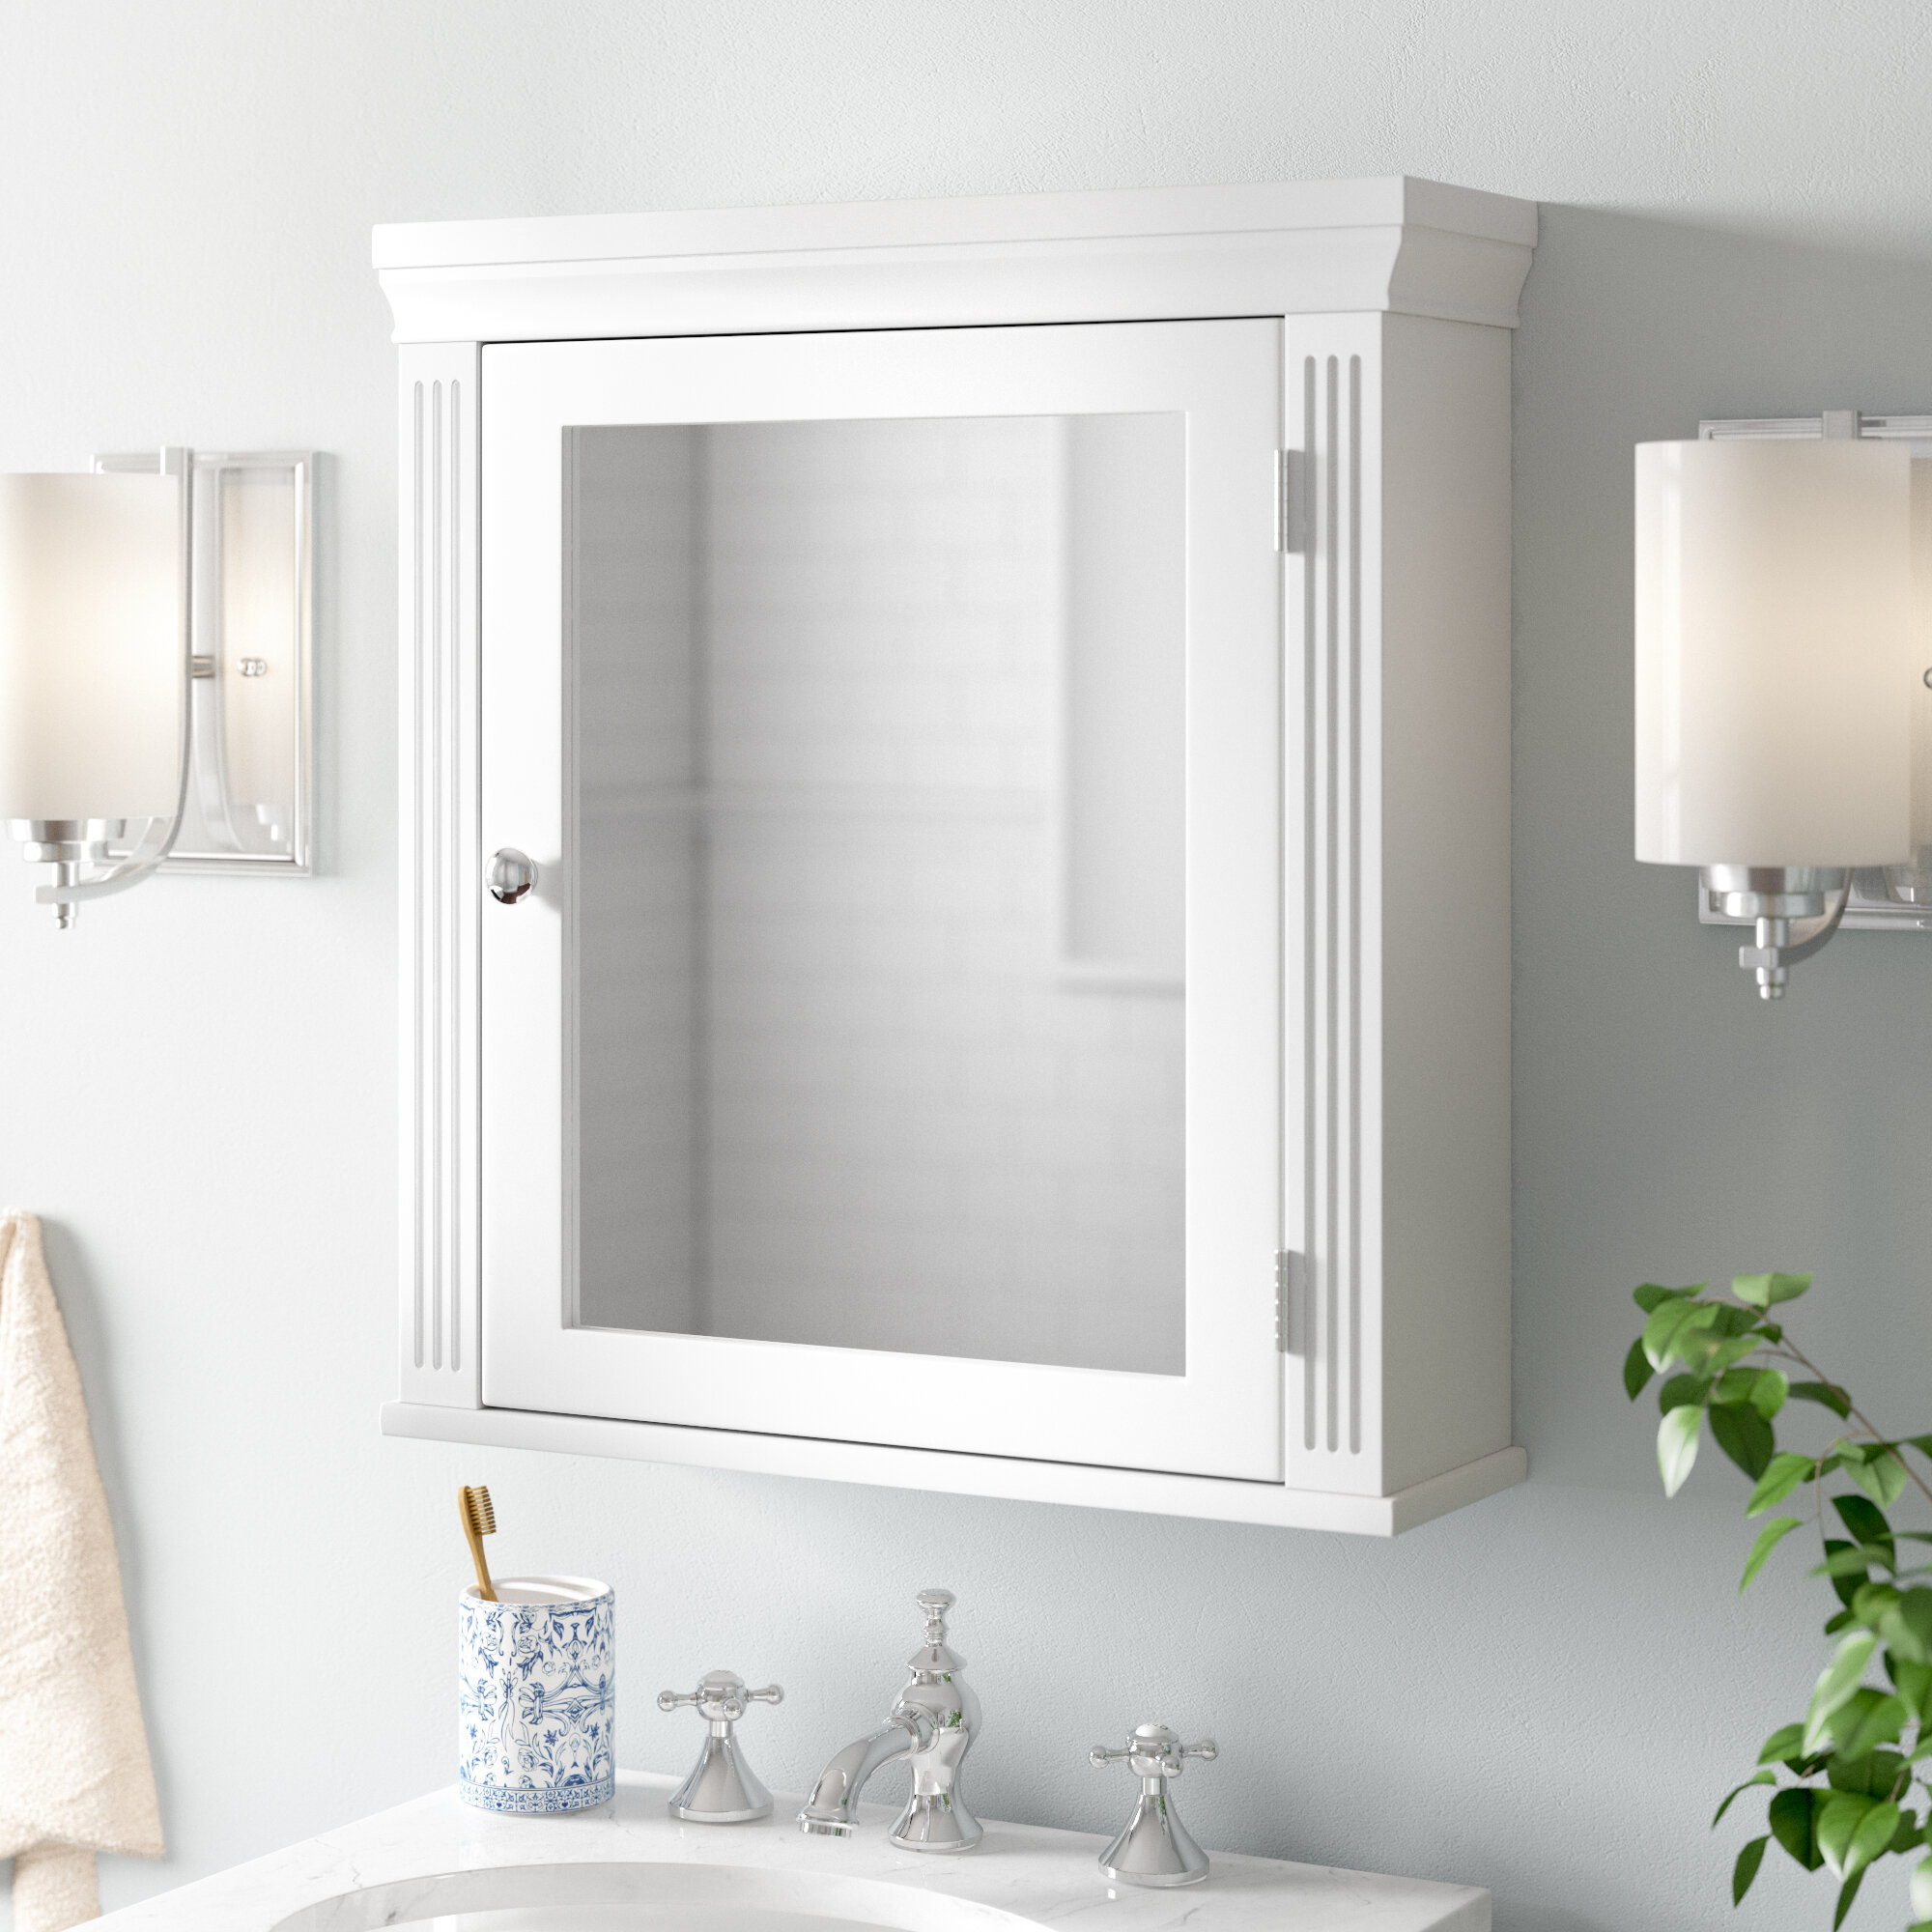 Wayfair Small Medicine Cabinets You Ll Love In 2021